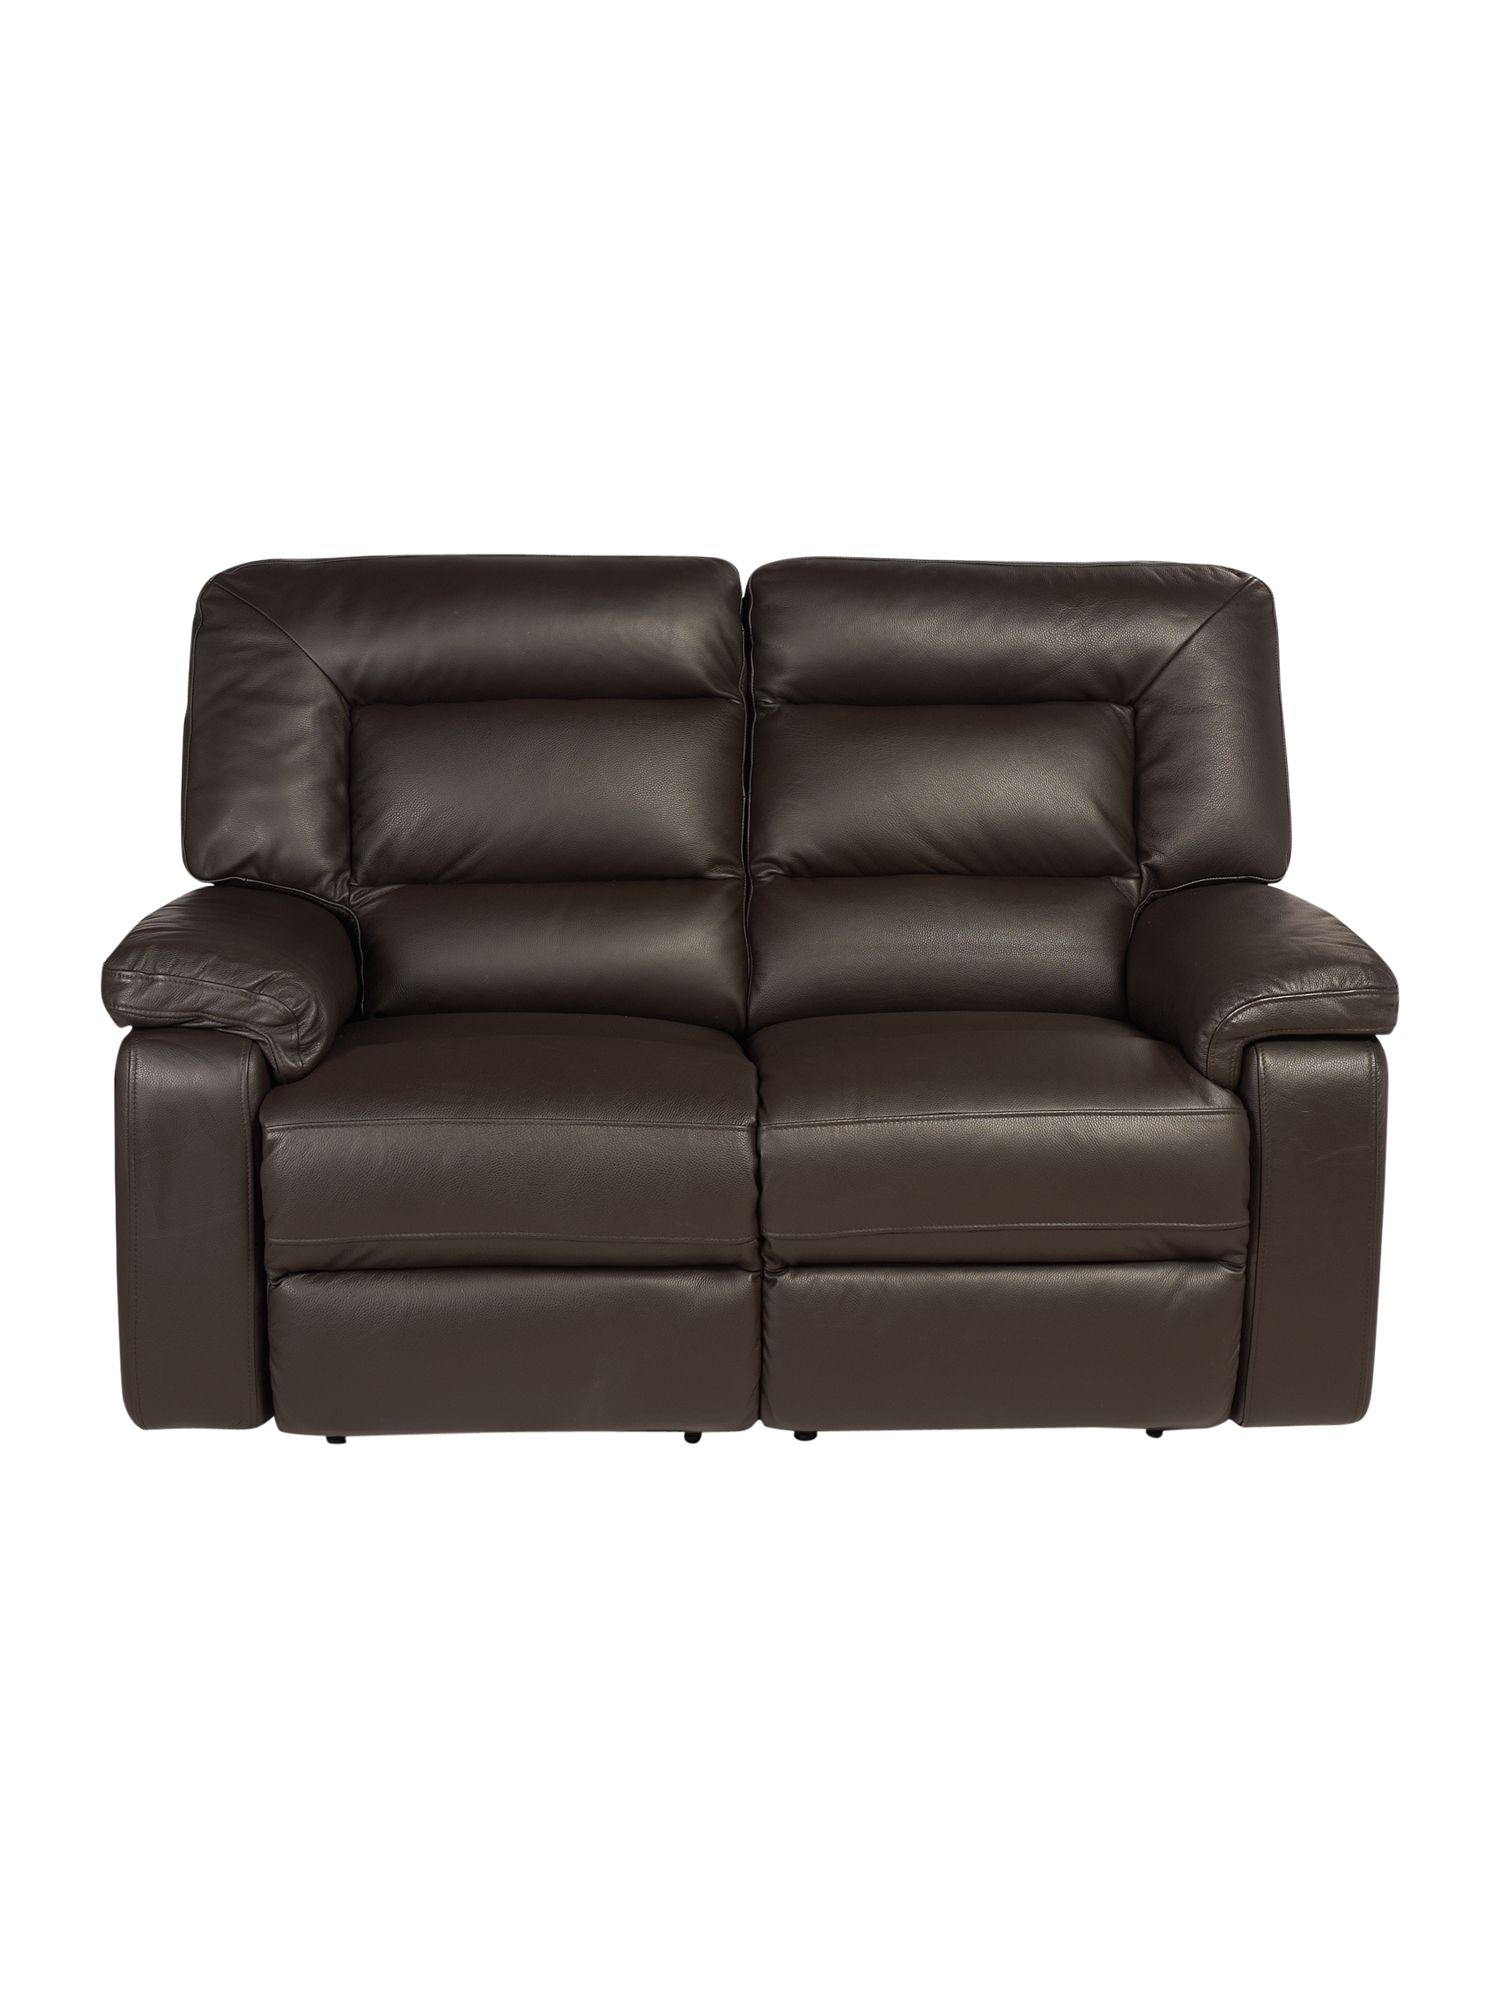 Verona medium 2 seater recliner sofa